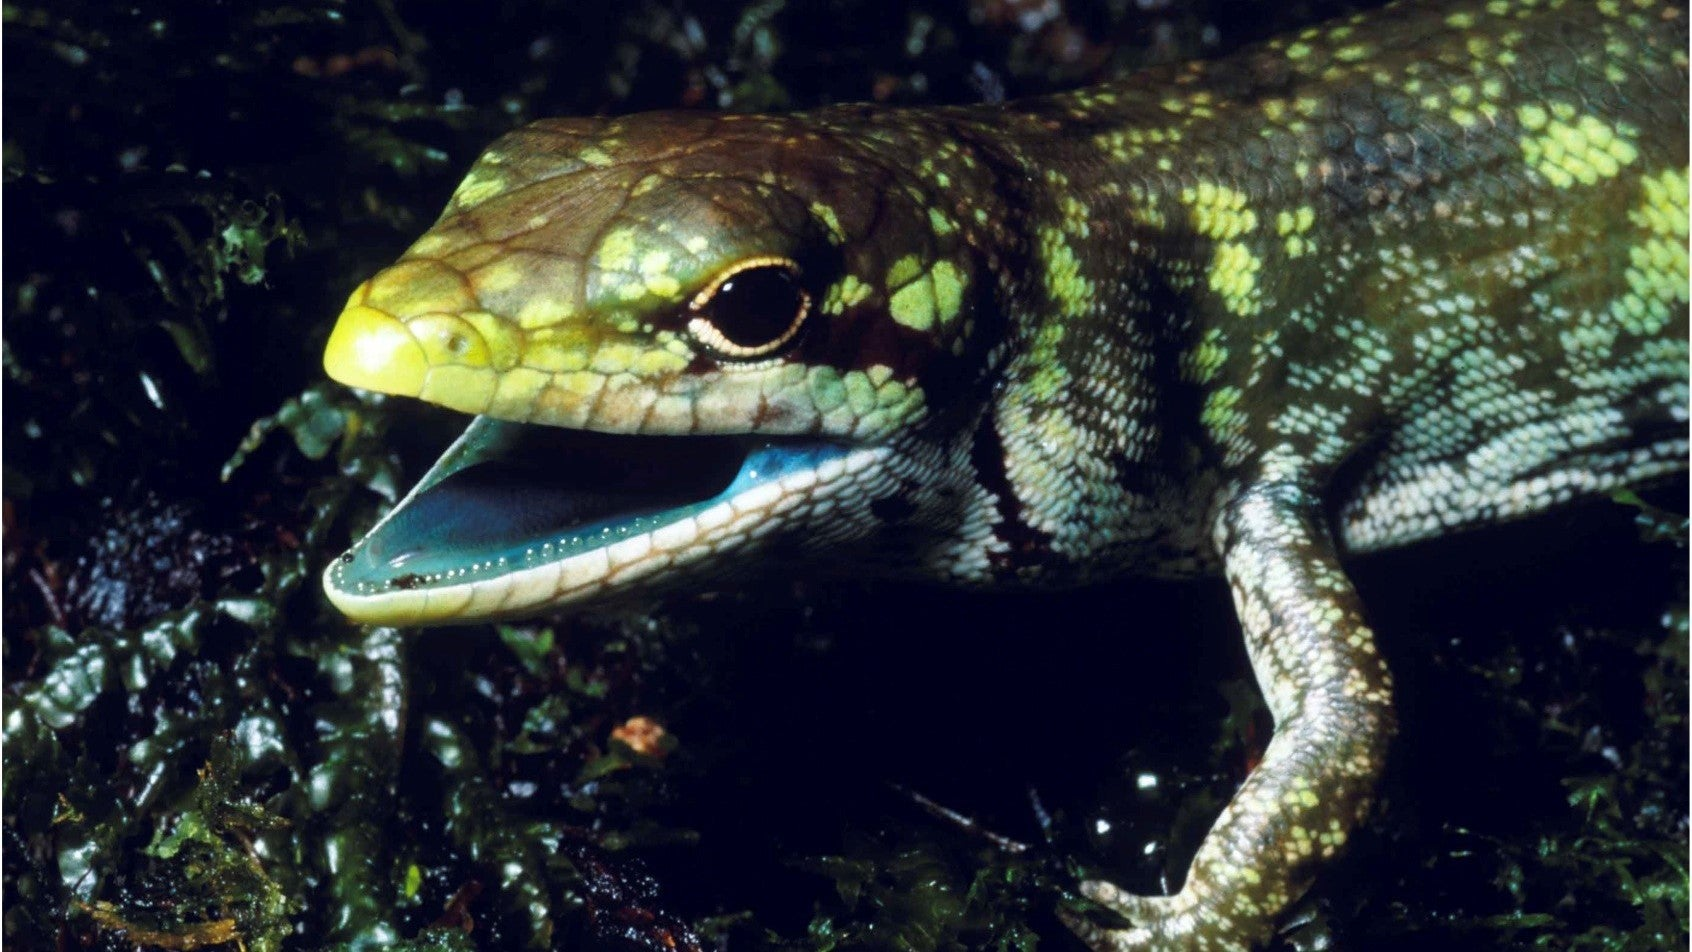 Lizards With Toxic Green Blood Are Super Freaky